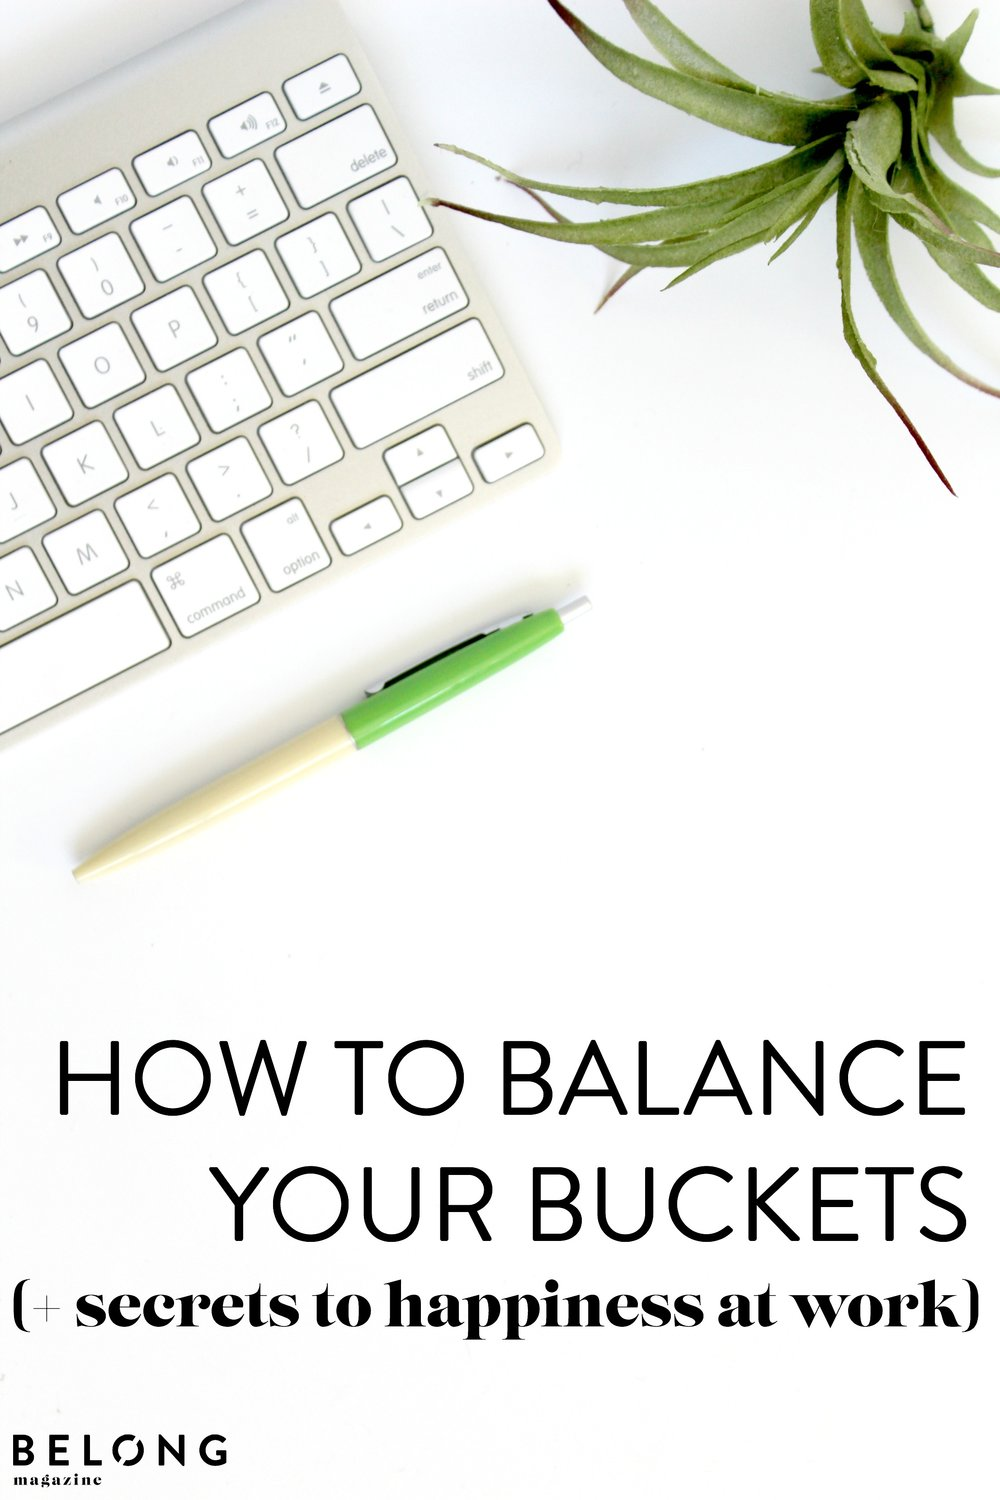 how to balance your buckets and the secrets to happiness at work - belong magazine blog - female entrepreneurs, lady boss, womein in business